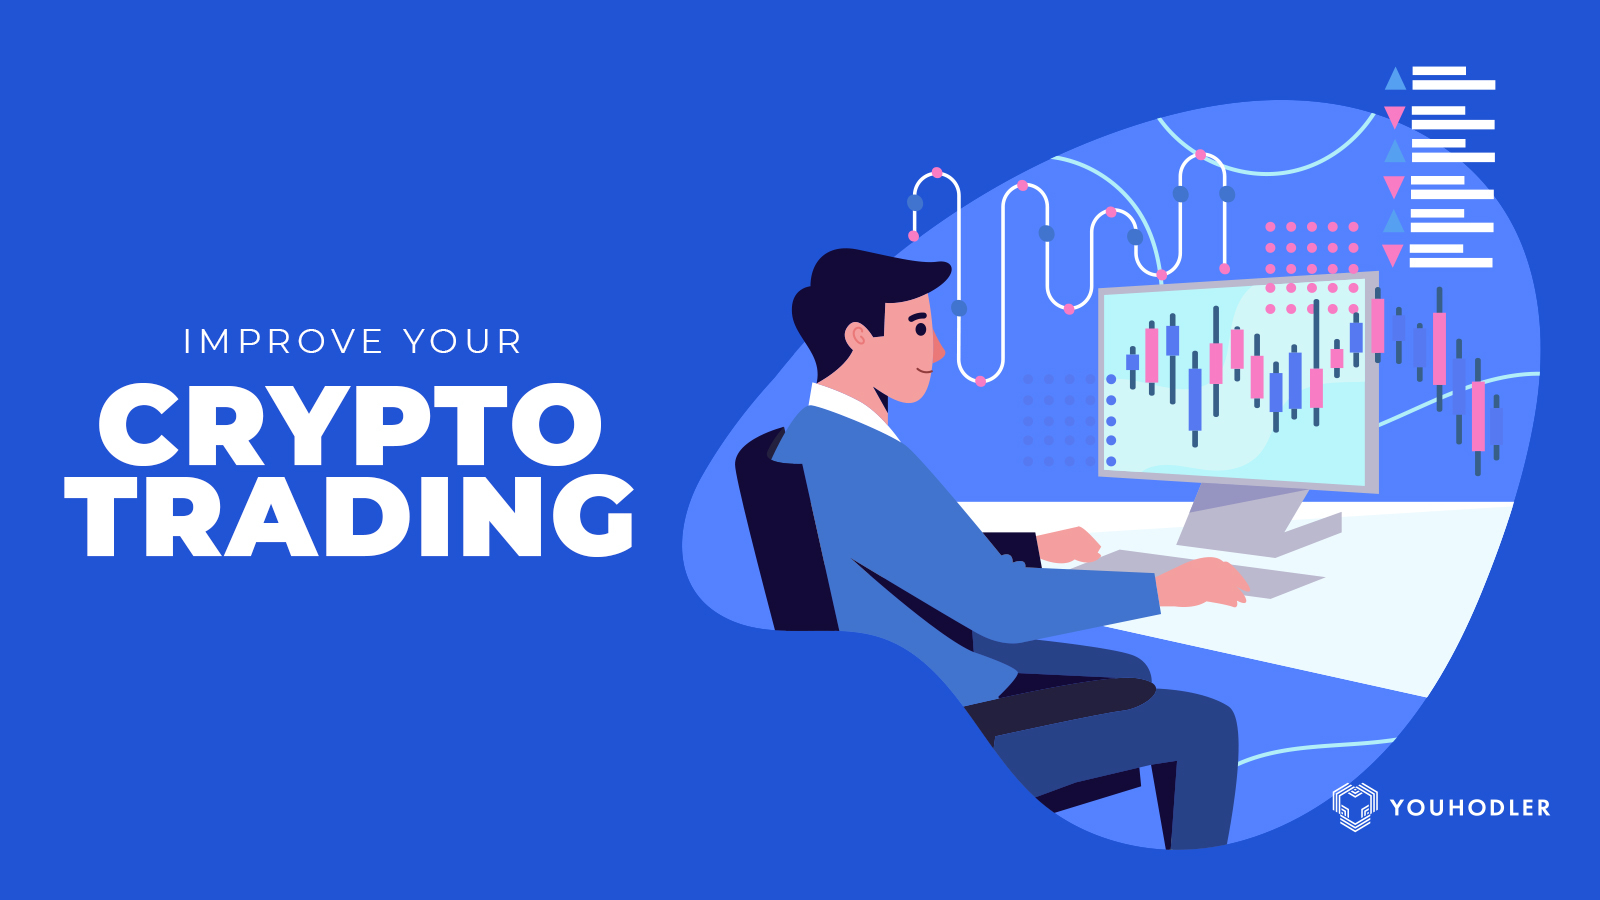 A trader sits down at his computer researching new crypto trading tips